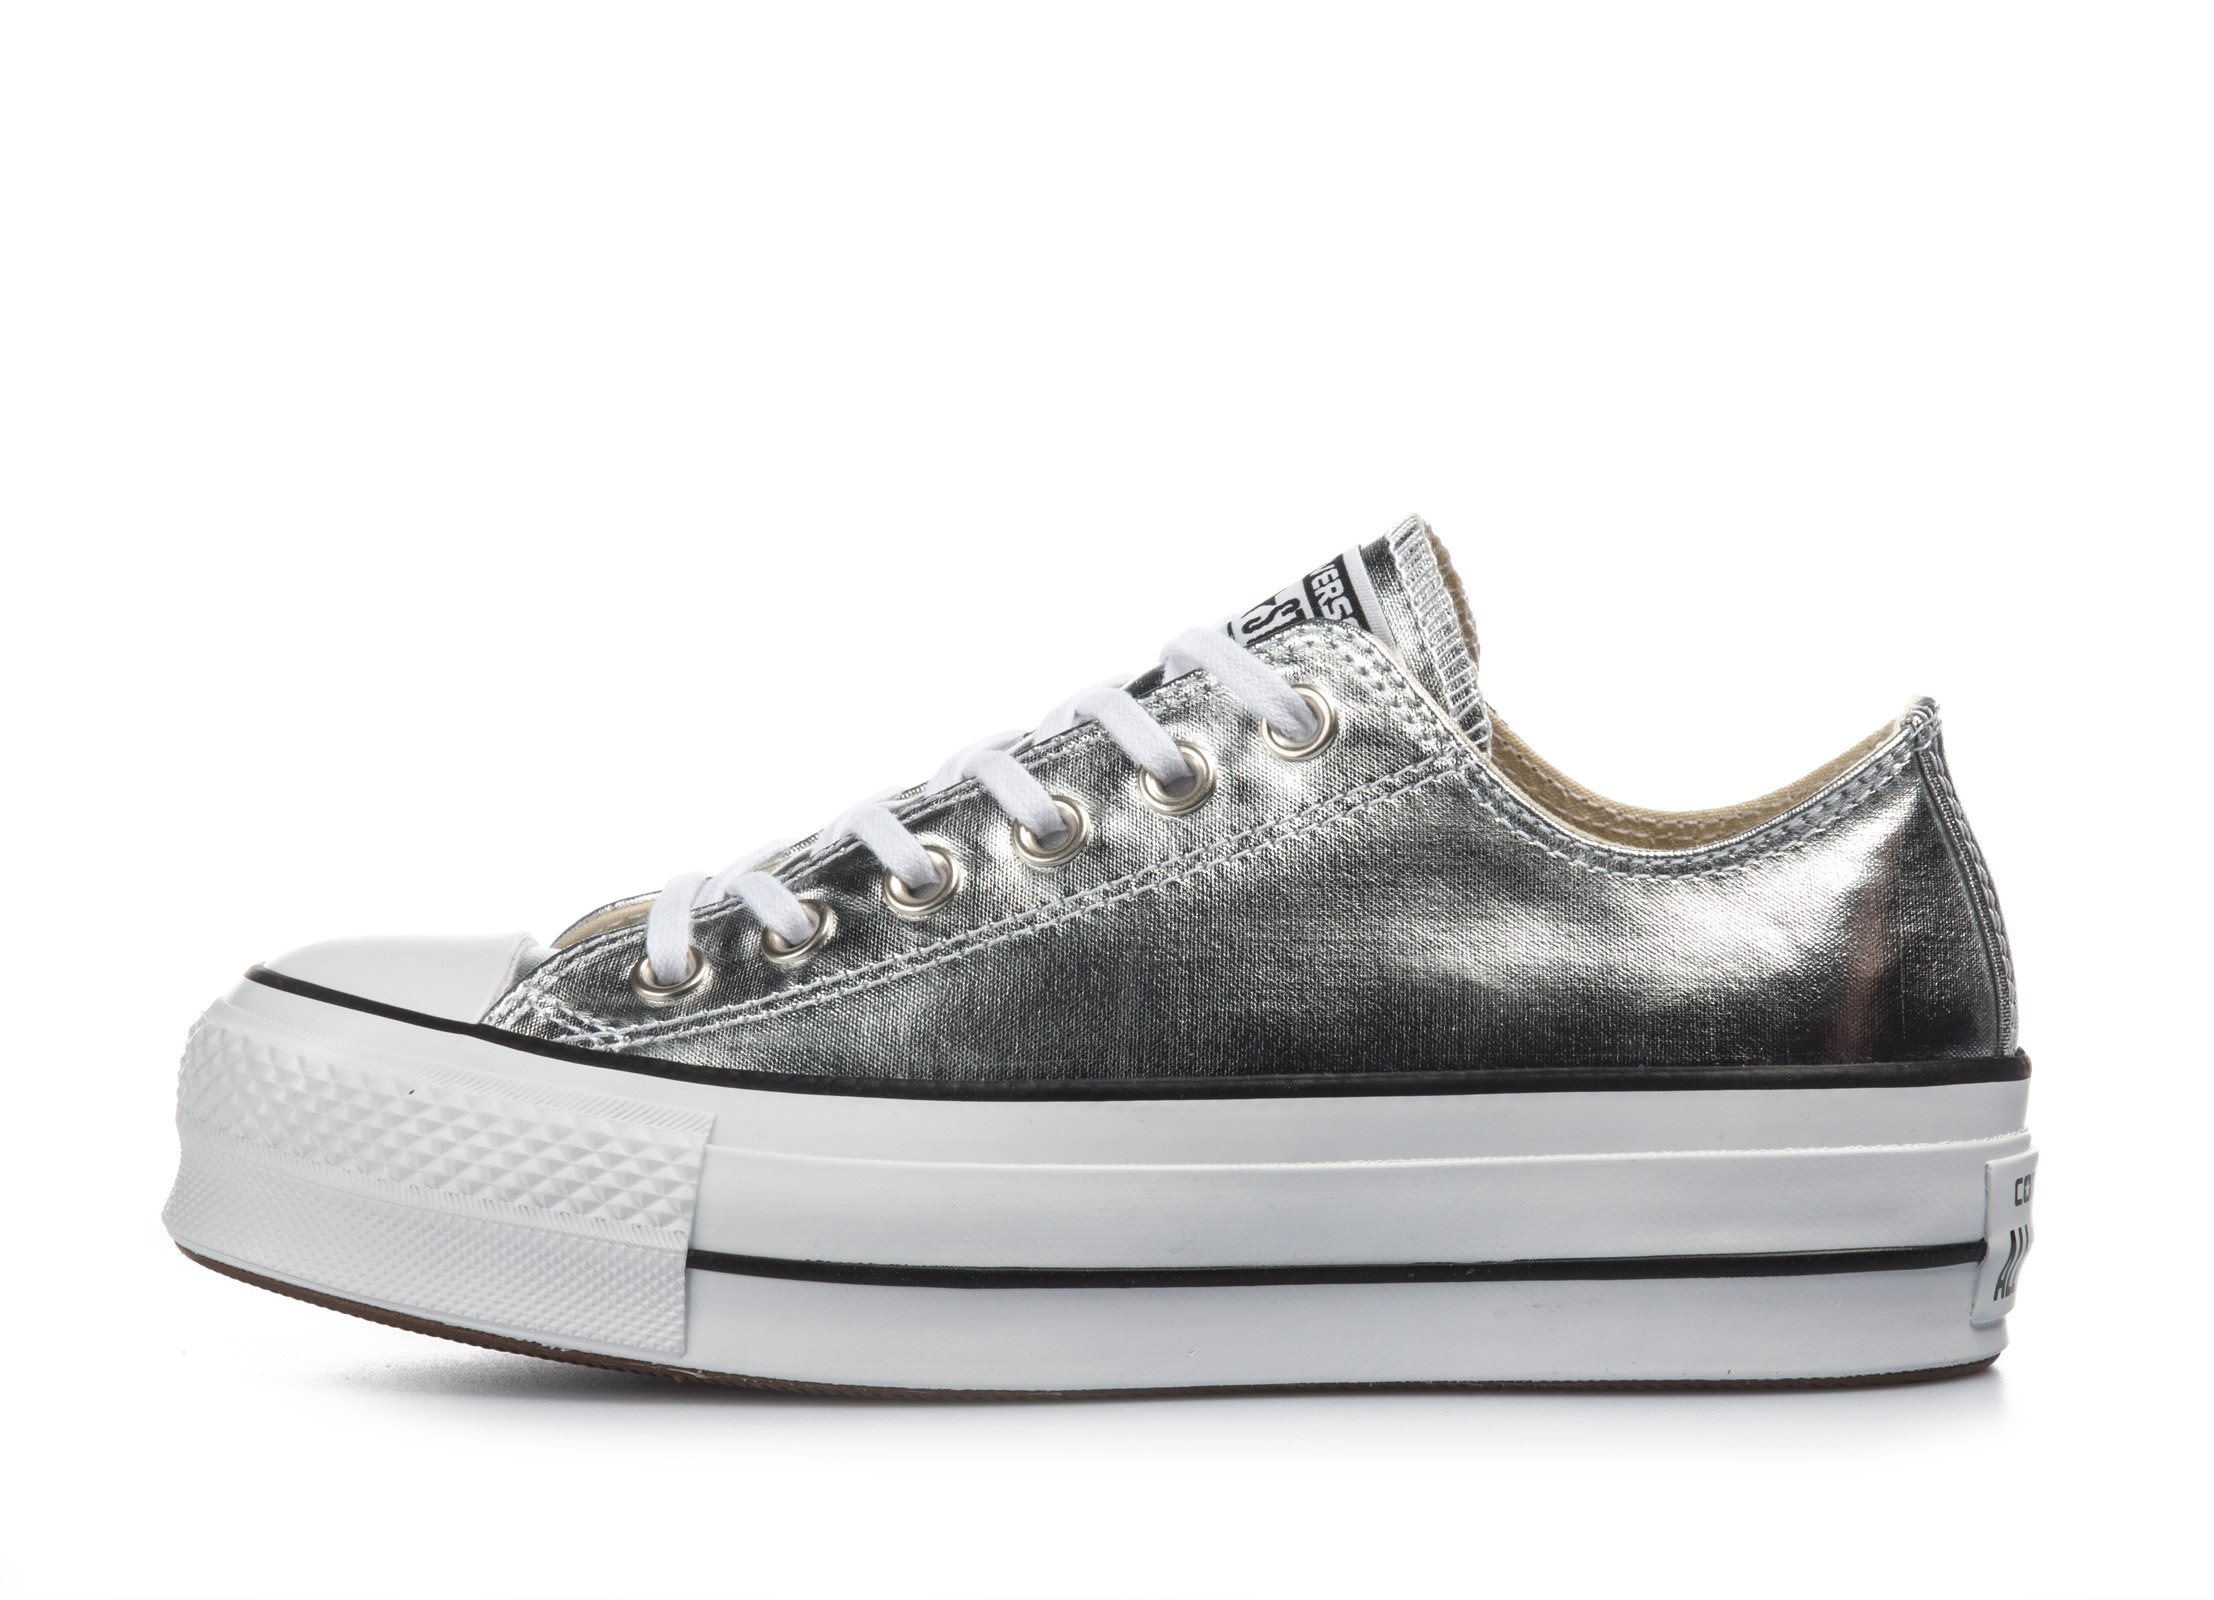 Converse Chuck Taylor All Star Lift Ox 560248C Ασημί γυναικα   υποδήματα   μόδας